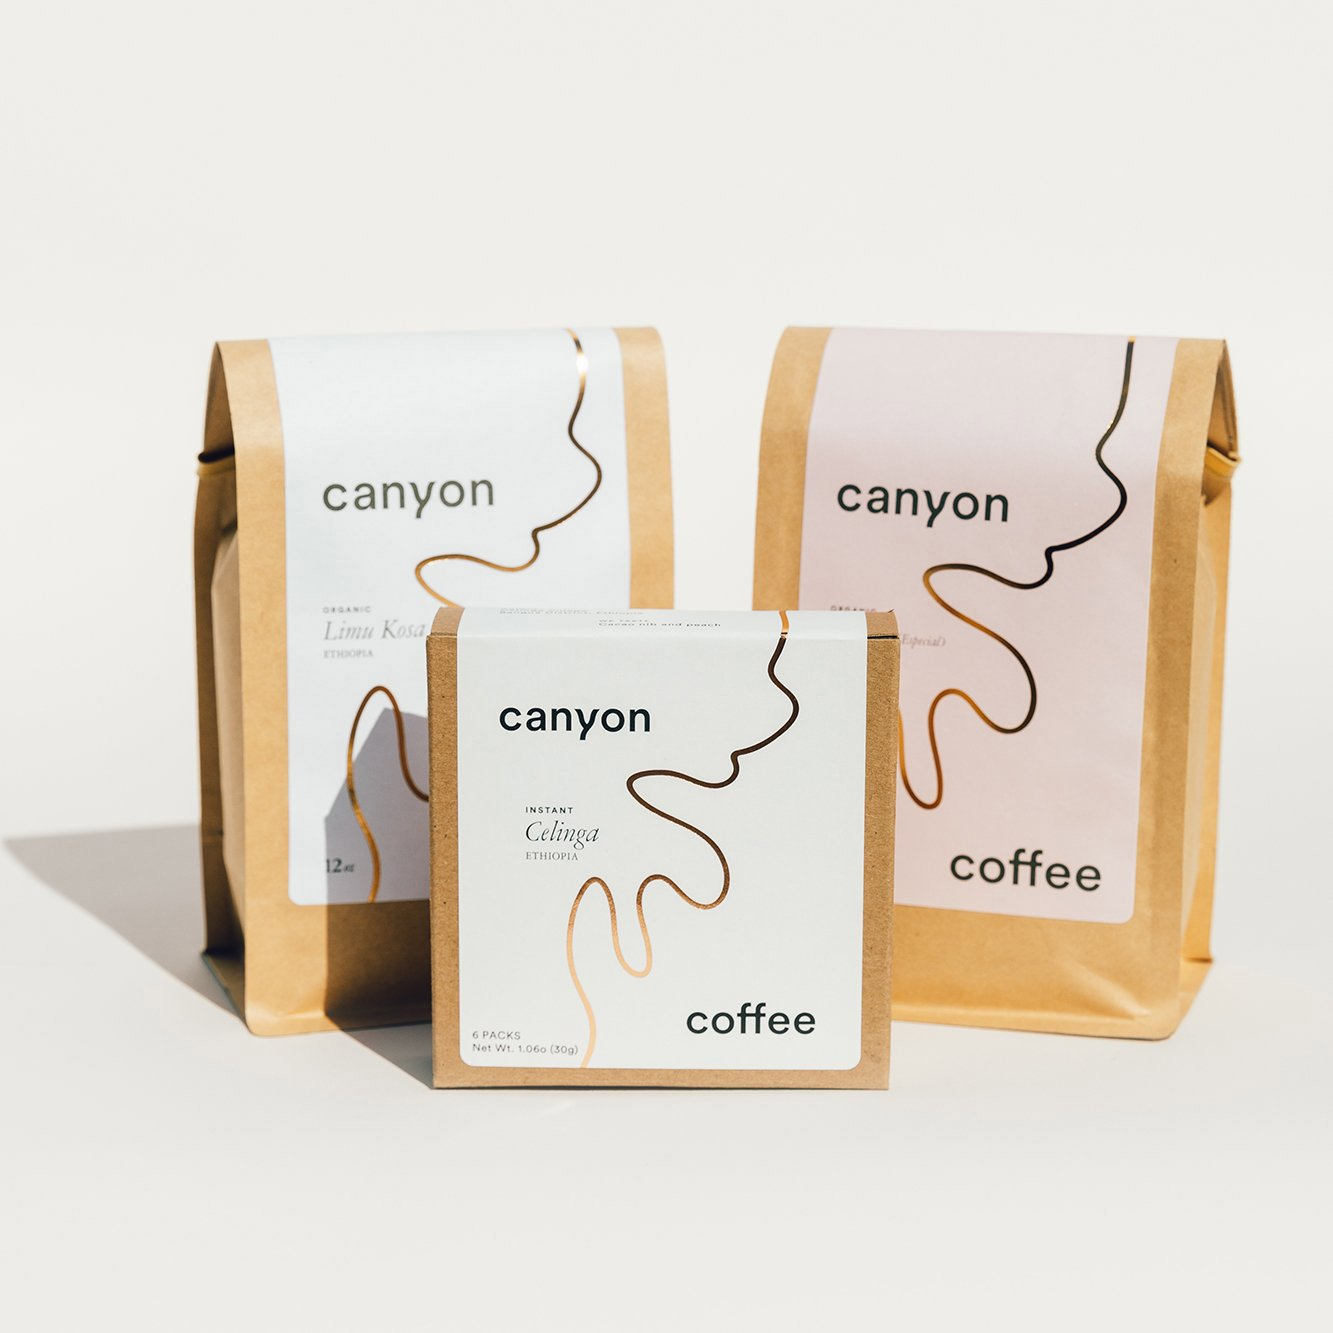 Canyon Coffee subscriptions